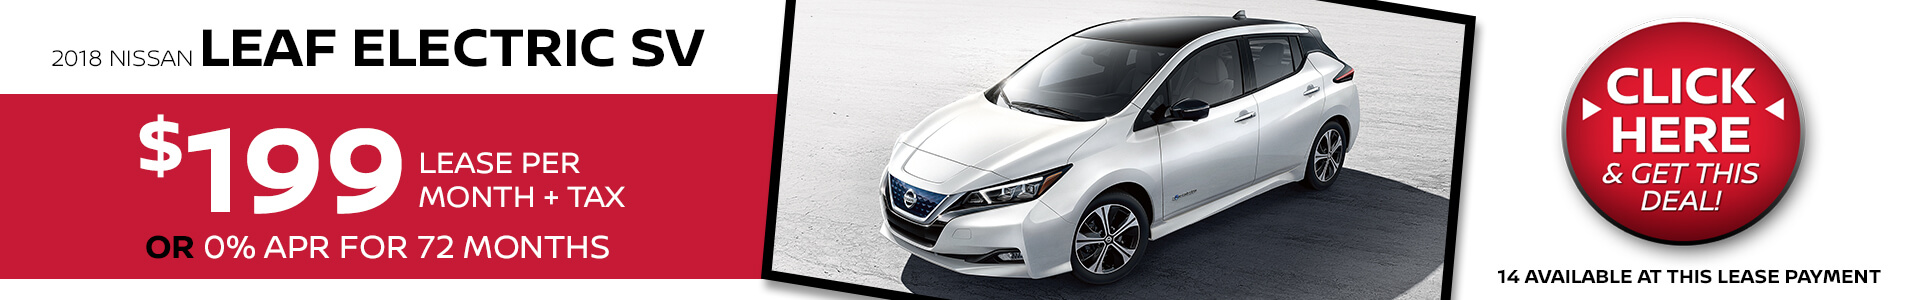 Nissan Leaf Electric $199 Lease